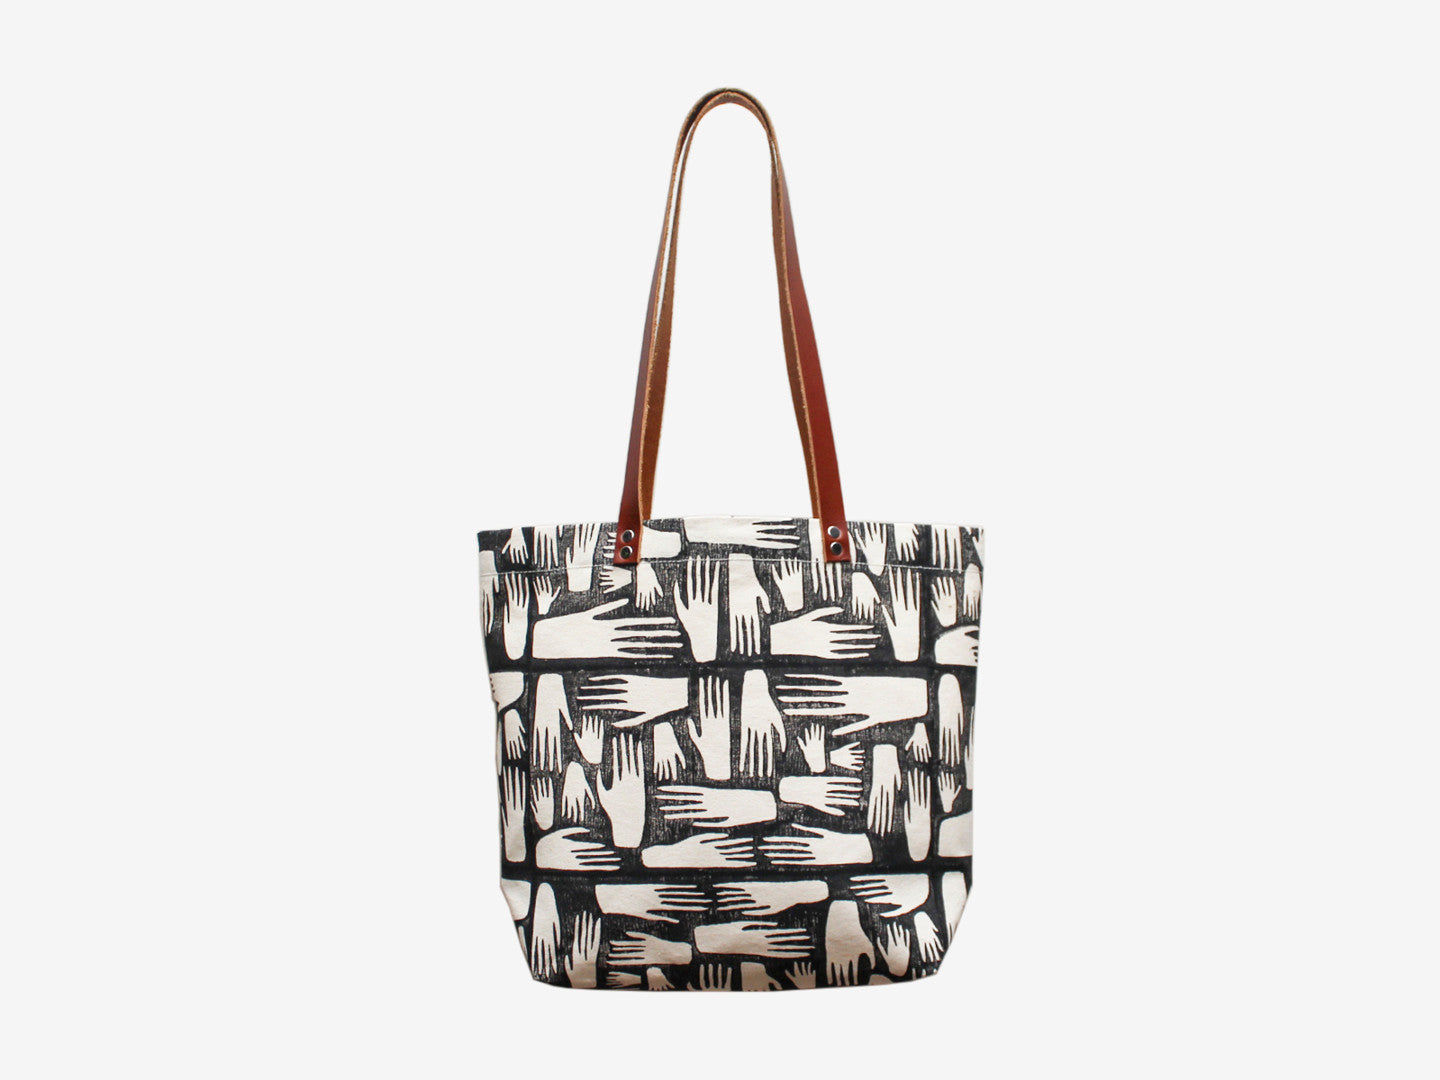 Hands tote